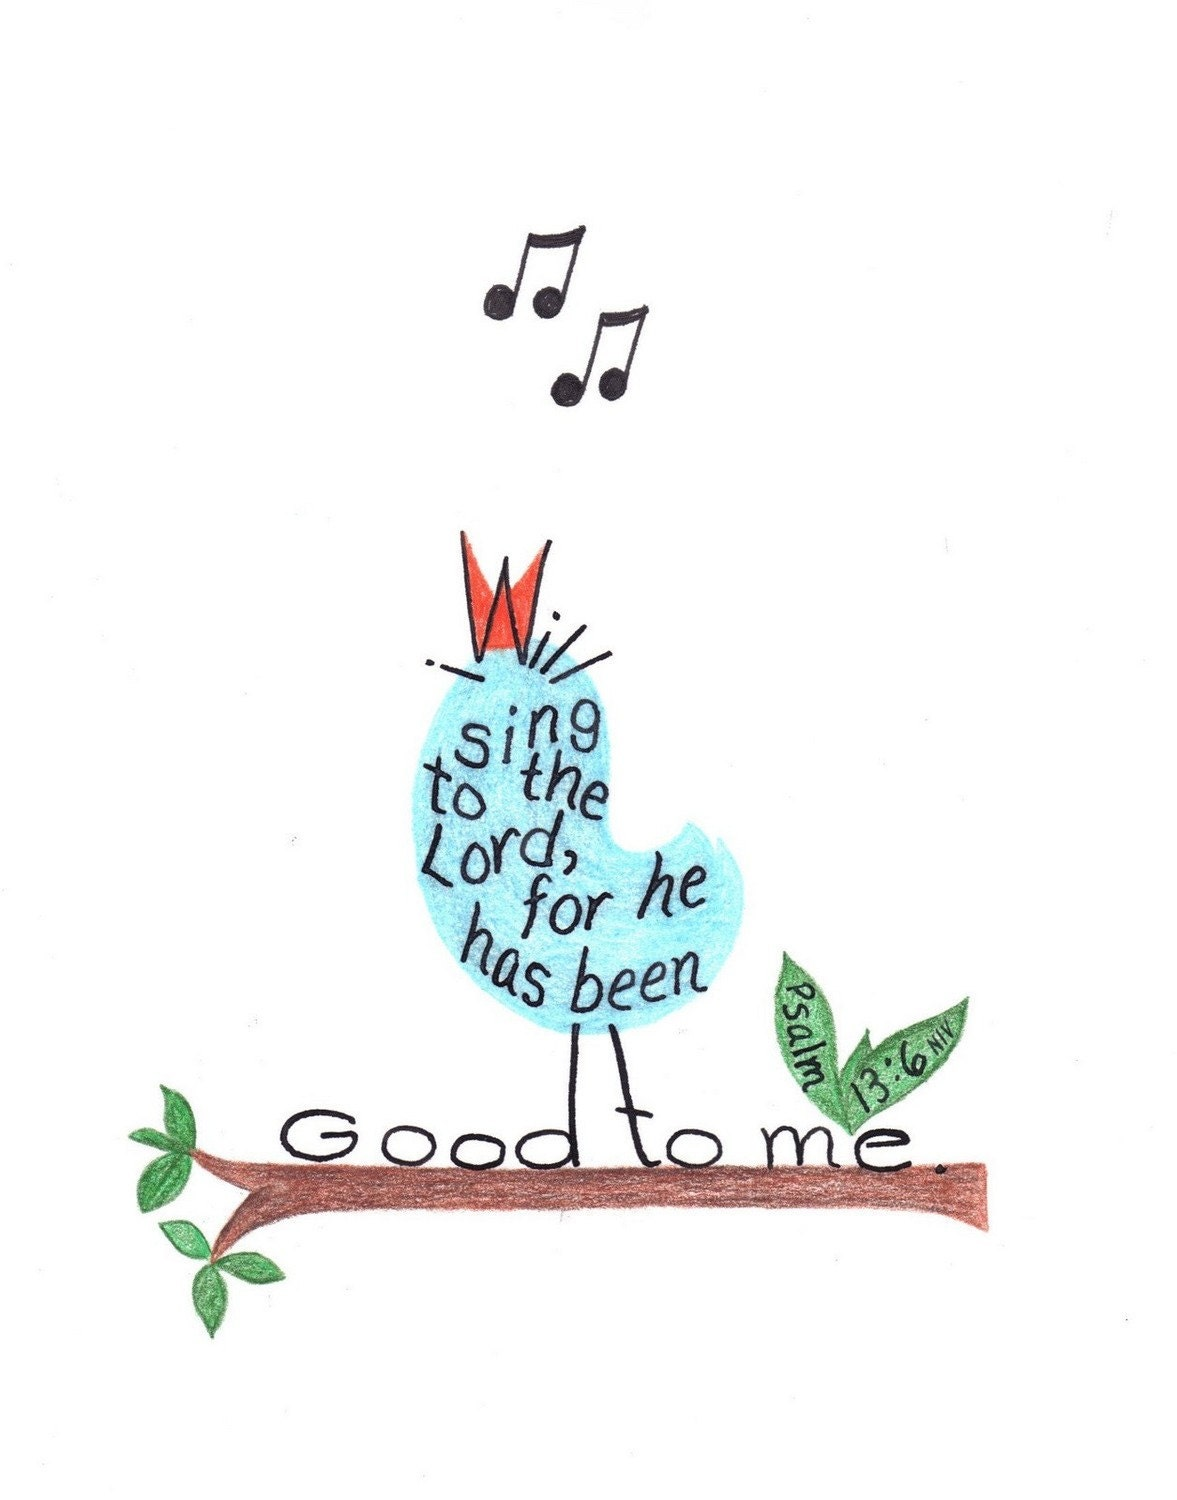 Singing bird drawing. inspirational bible verse print. - LindaRobbsArt